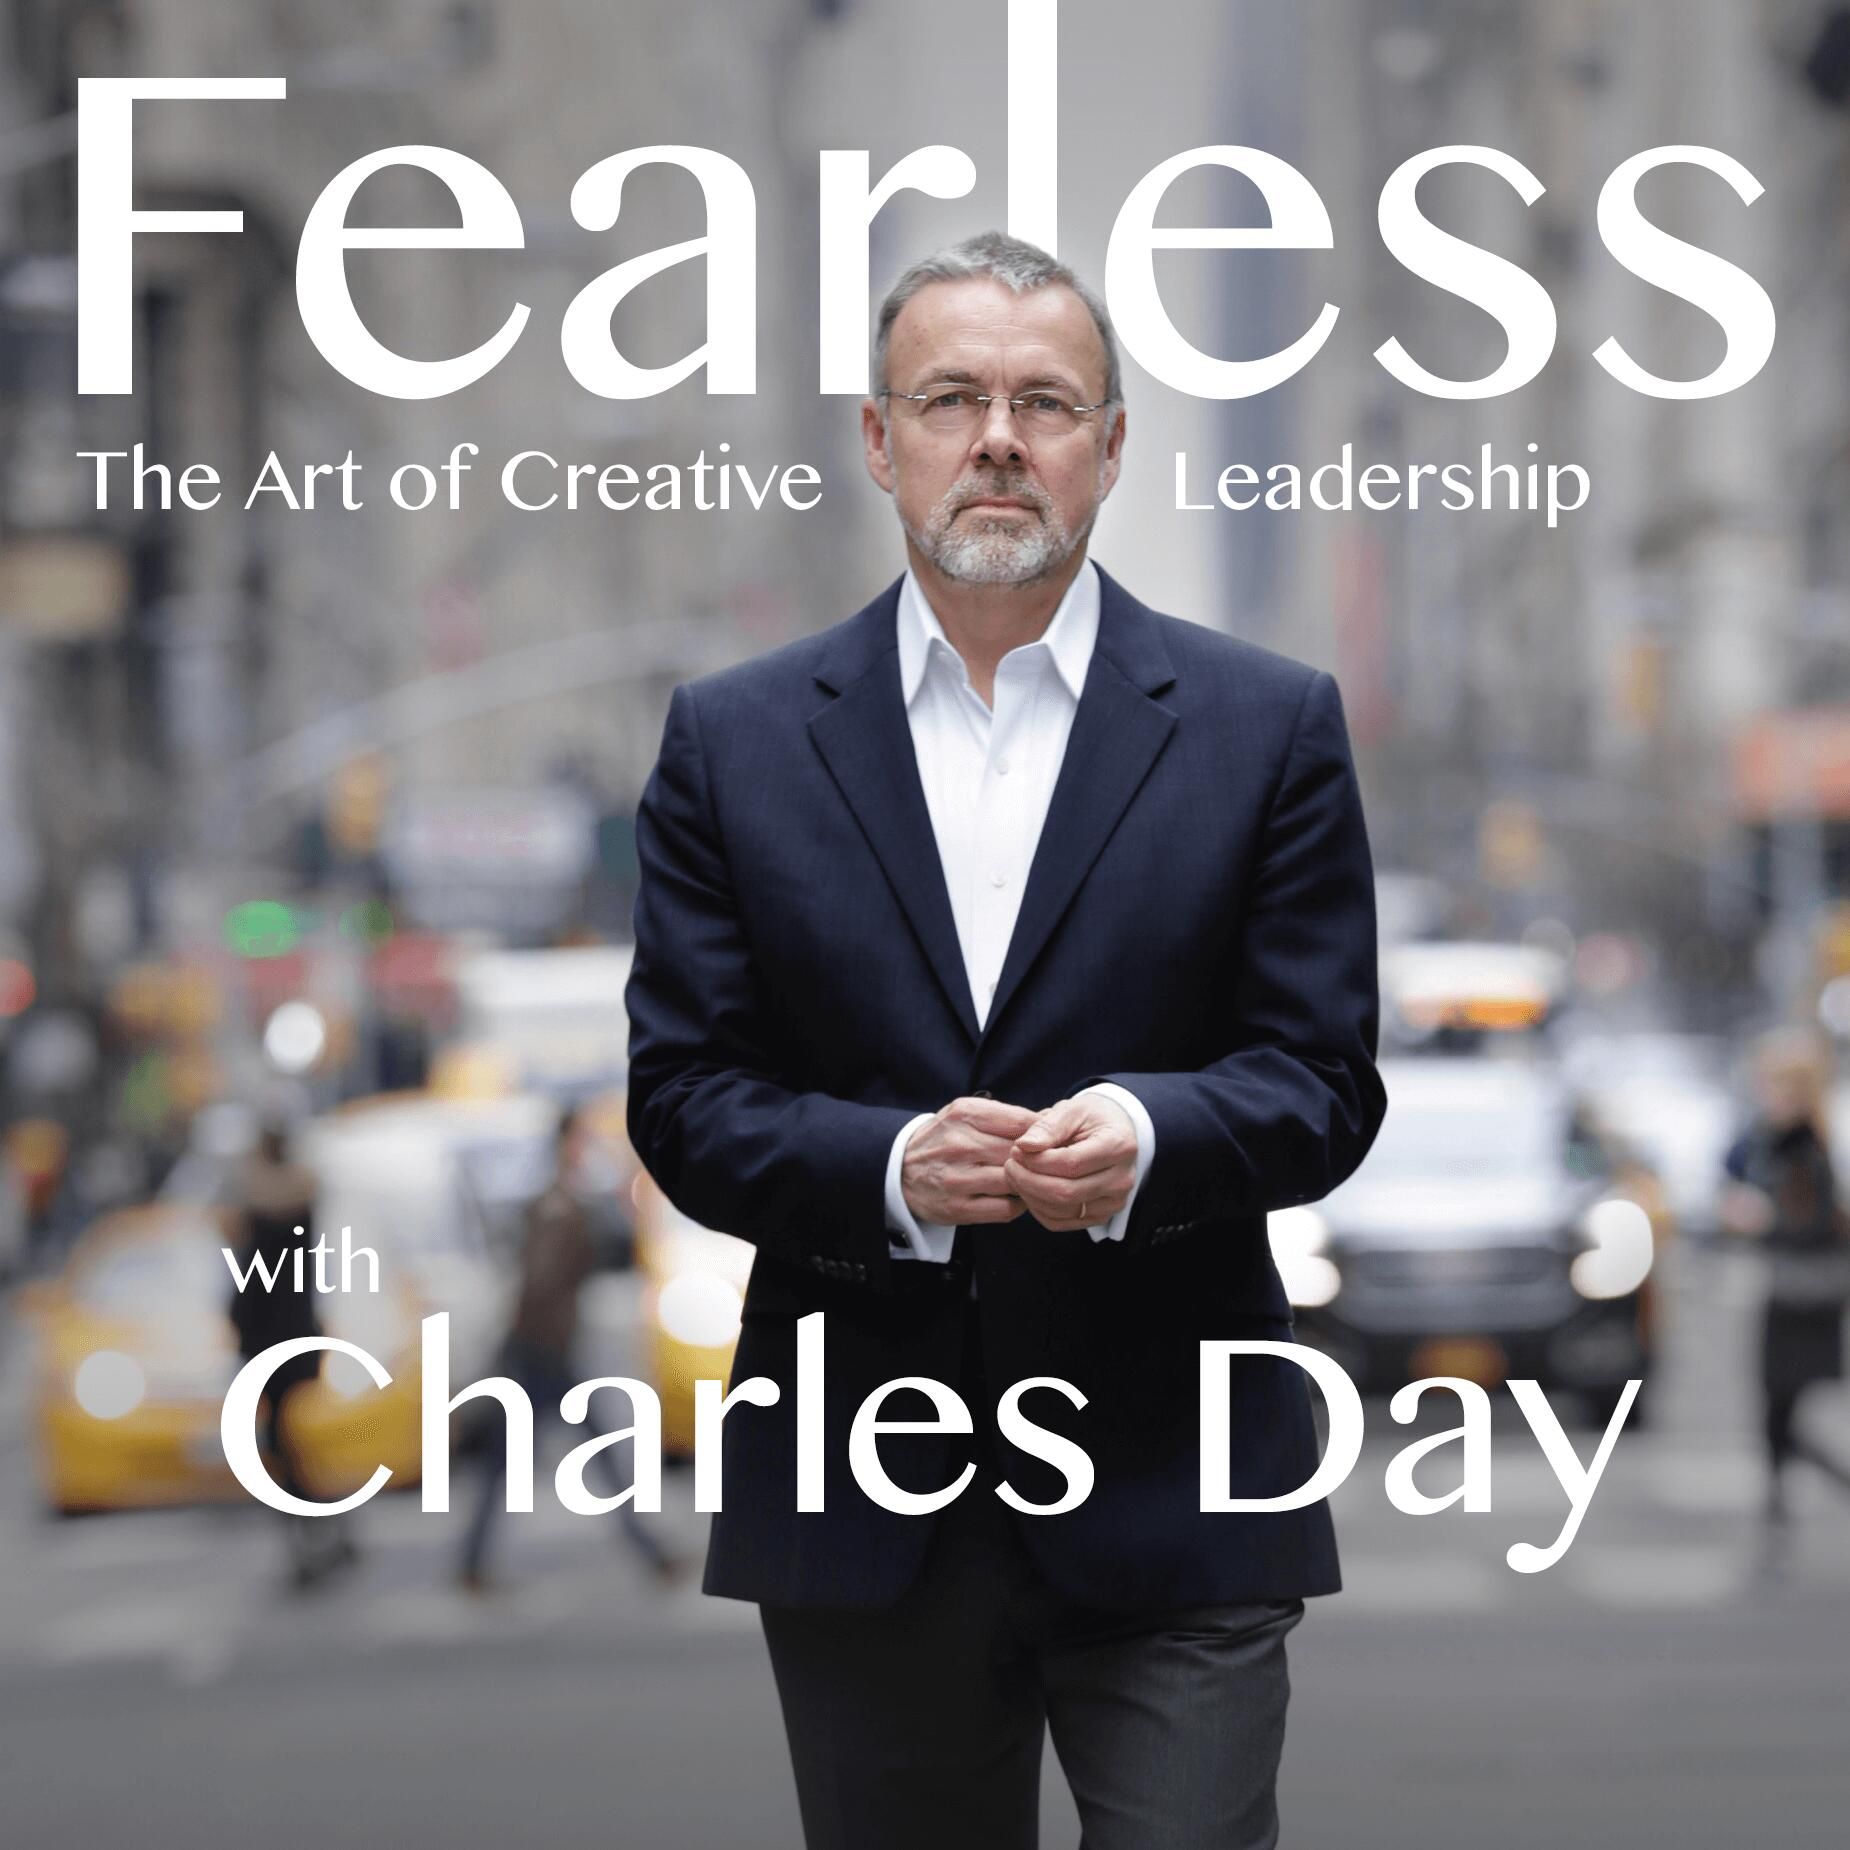 Listen to Ep 72: Nathalie Molina Niño of Brava Investments on creating impact | Fearless - The Art of Creative Leadership with Charles Day | Podcasts